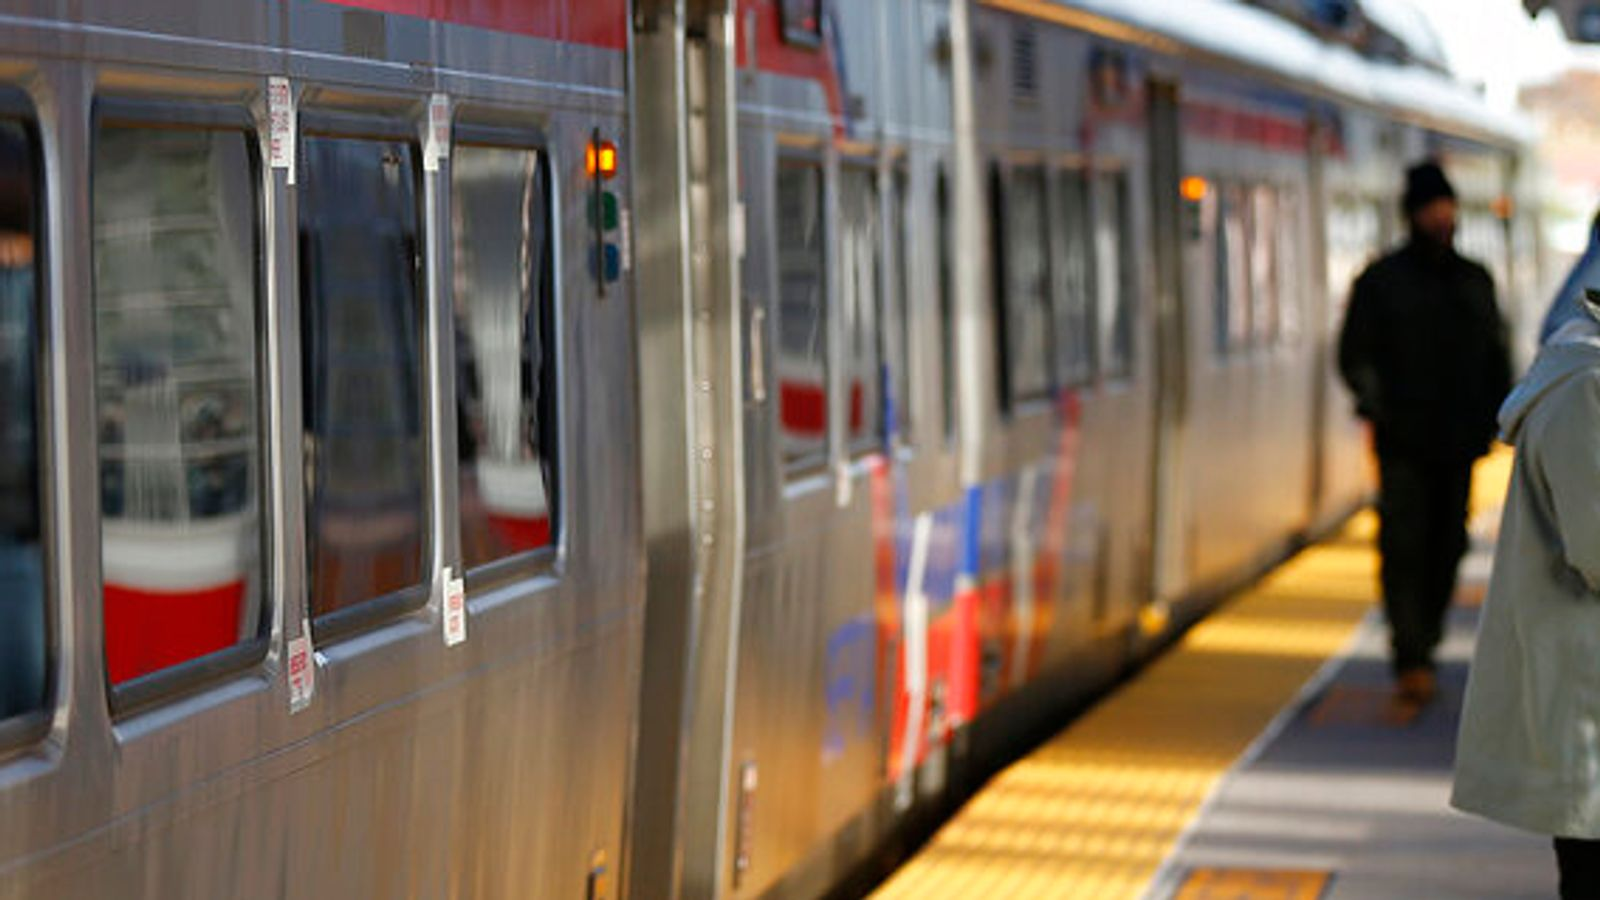 Philadelphia train rape: Train passengers watched attack on woman and did nothing, US police say